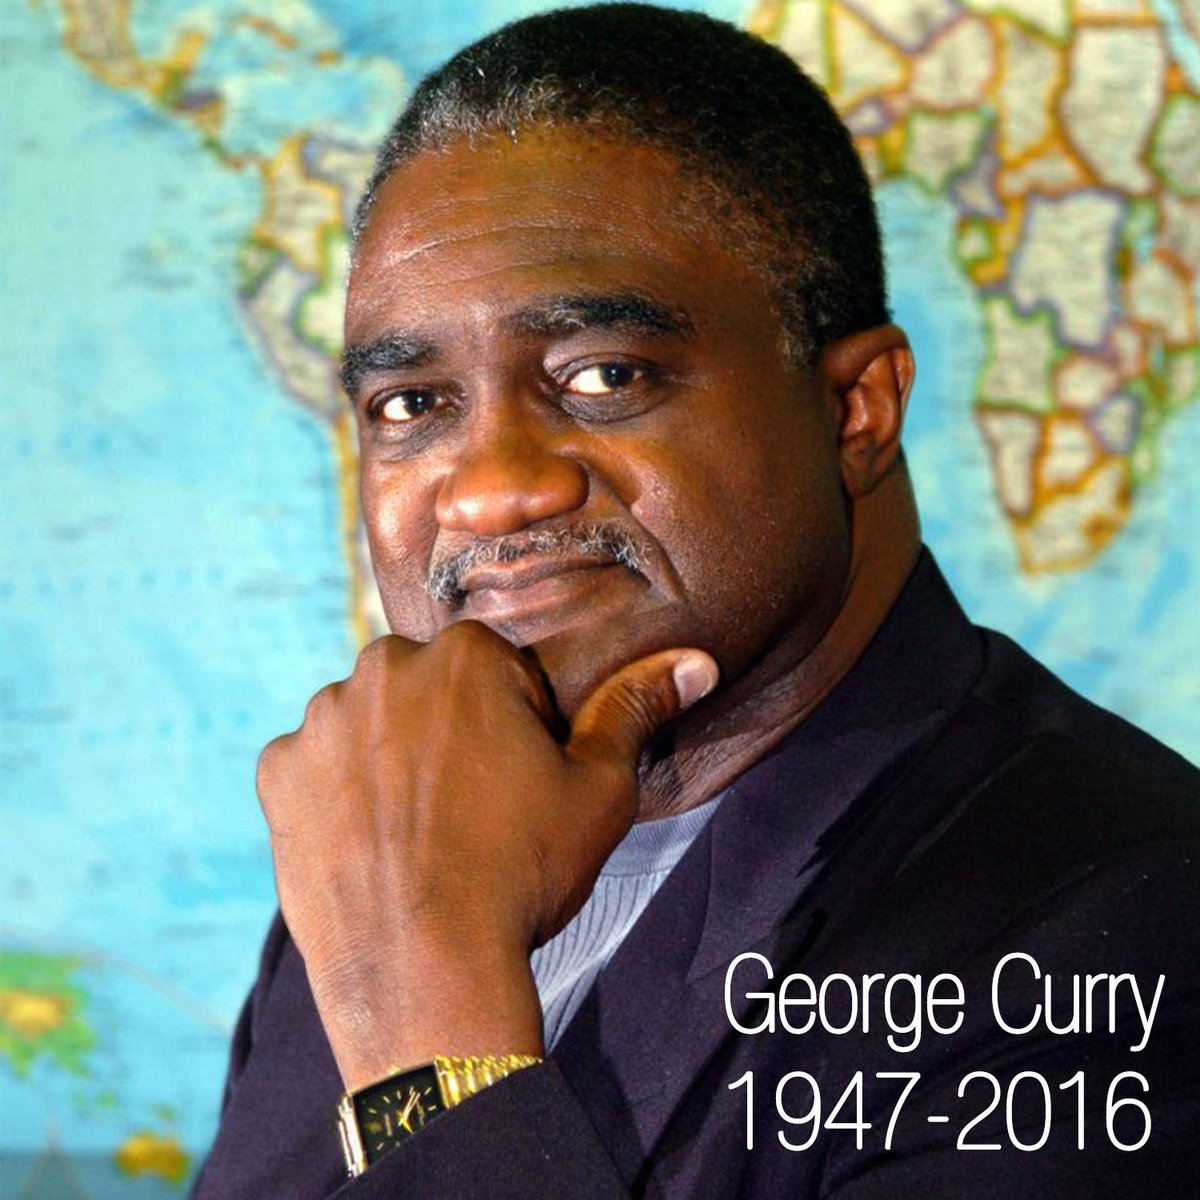 The CBCF honors legendary civil rights journalist George Curry.  Our thoughts are with his family.  #RIPGeorgeCurry https://t.co/W6QuLGJV6A